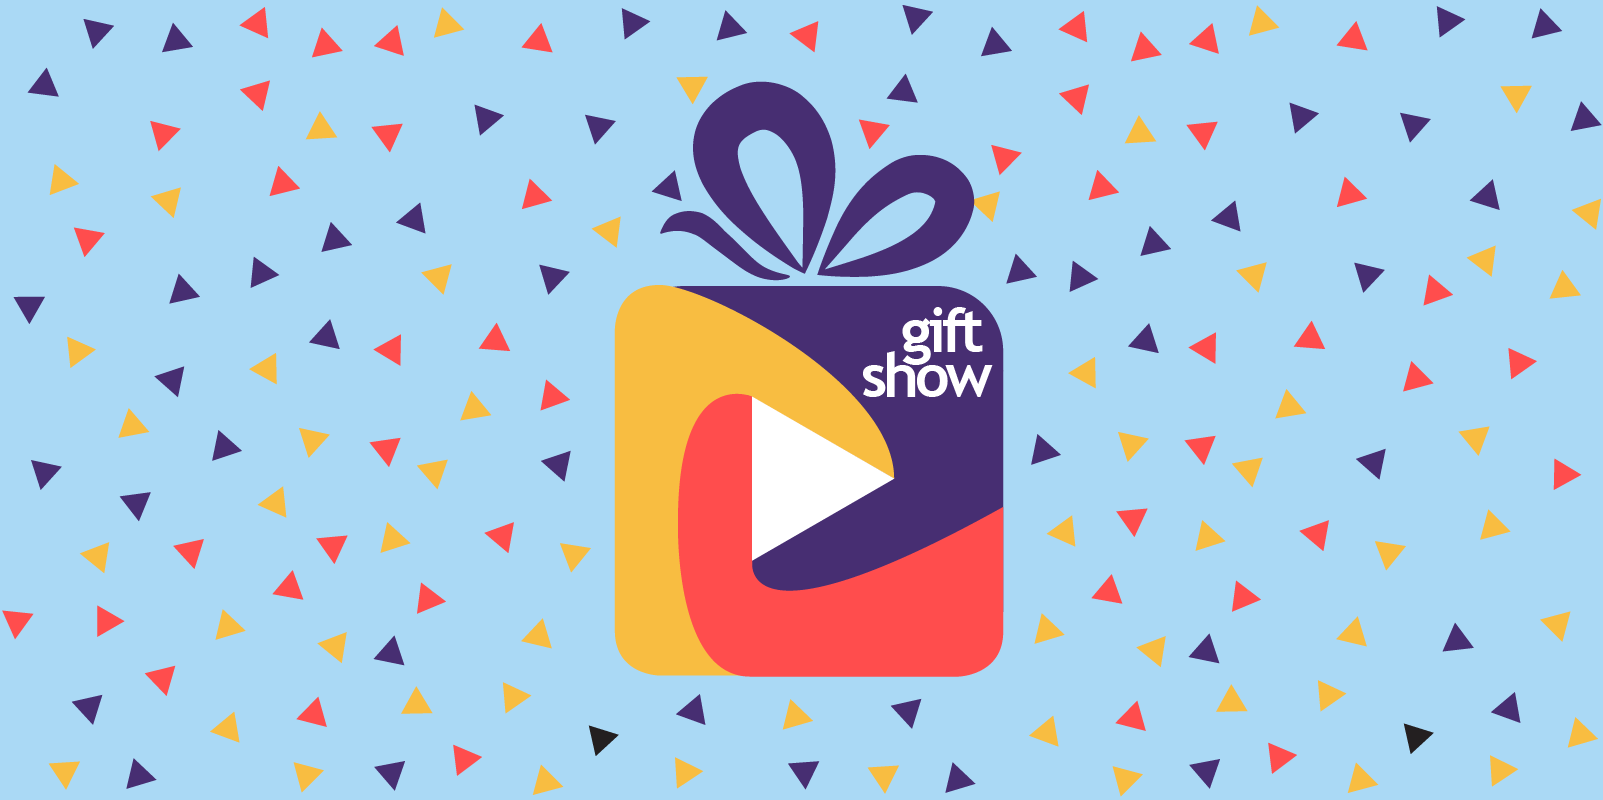 The gift show